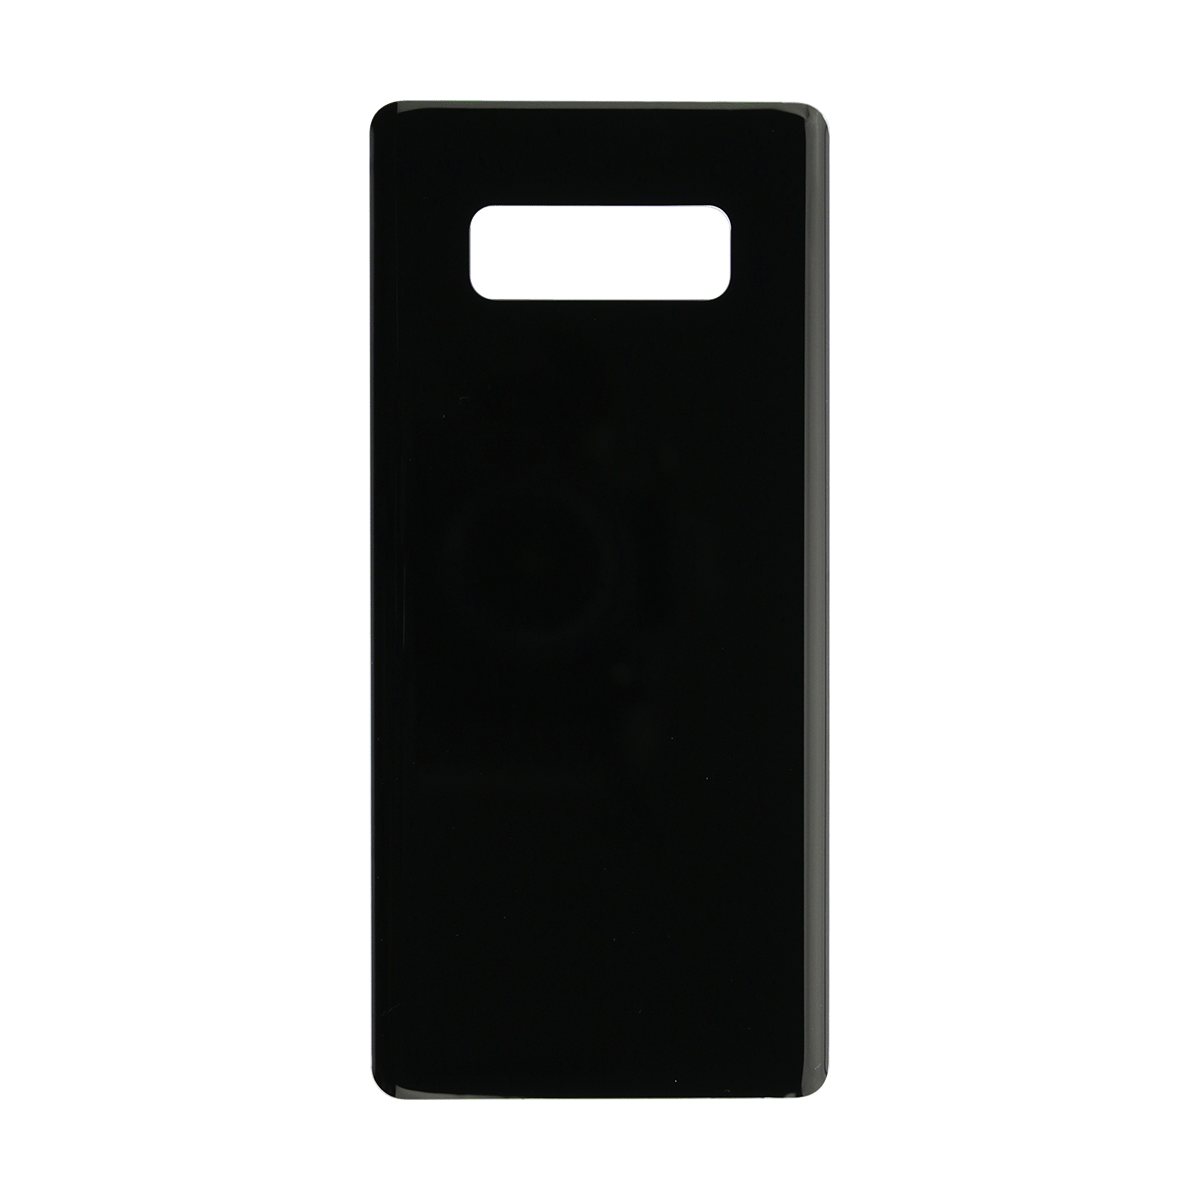 Samsung Galaxy Note 8 Rear Glass Battery Cover Replacement